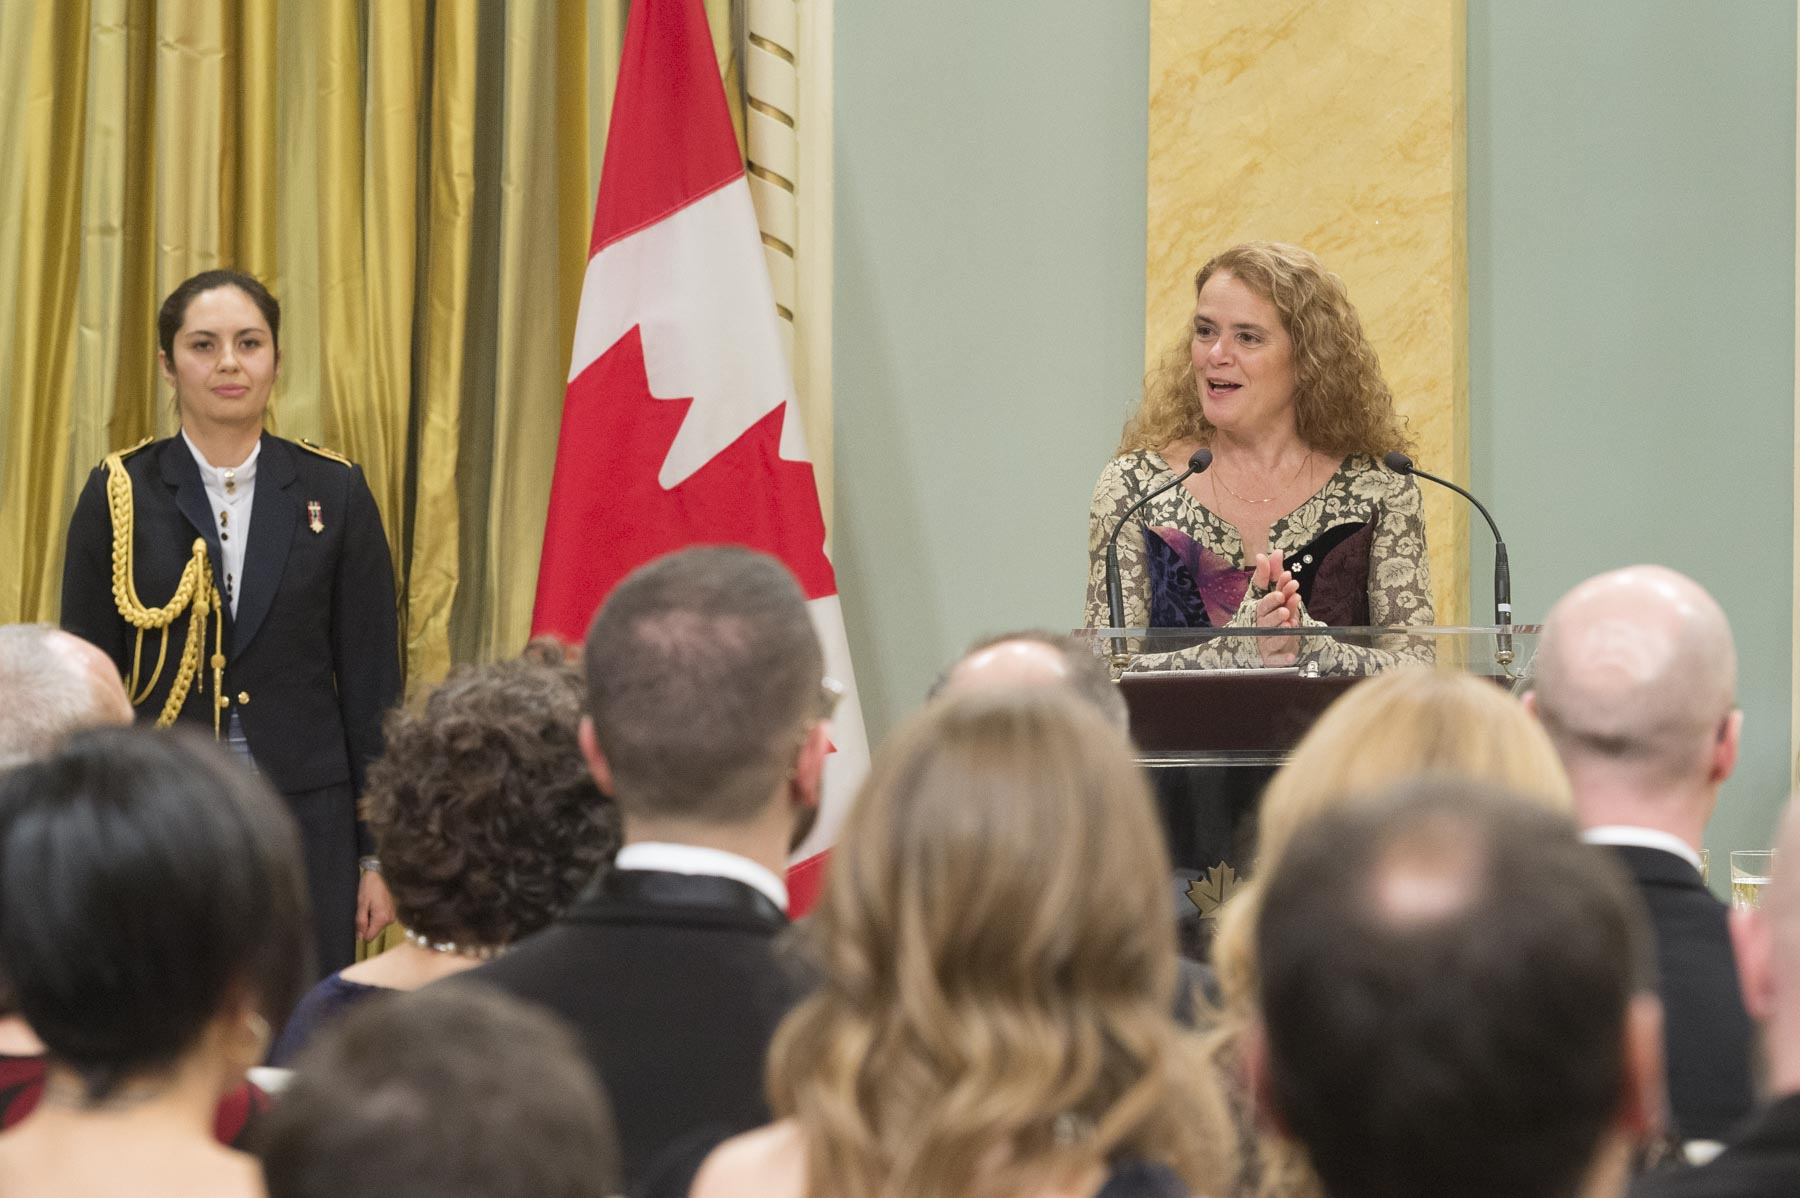 The Governor General presented the 2017 Governor General's Literary Awards during a ceremony at Rideau Hall.